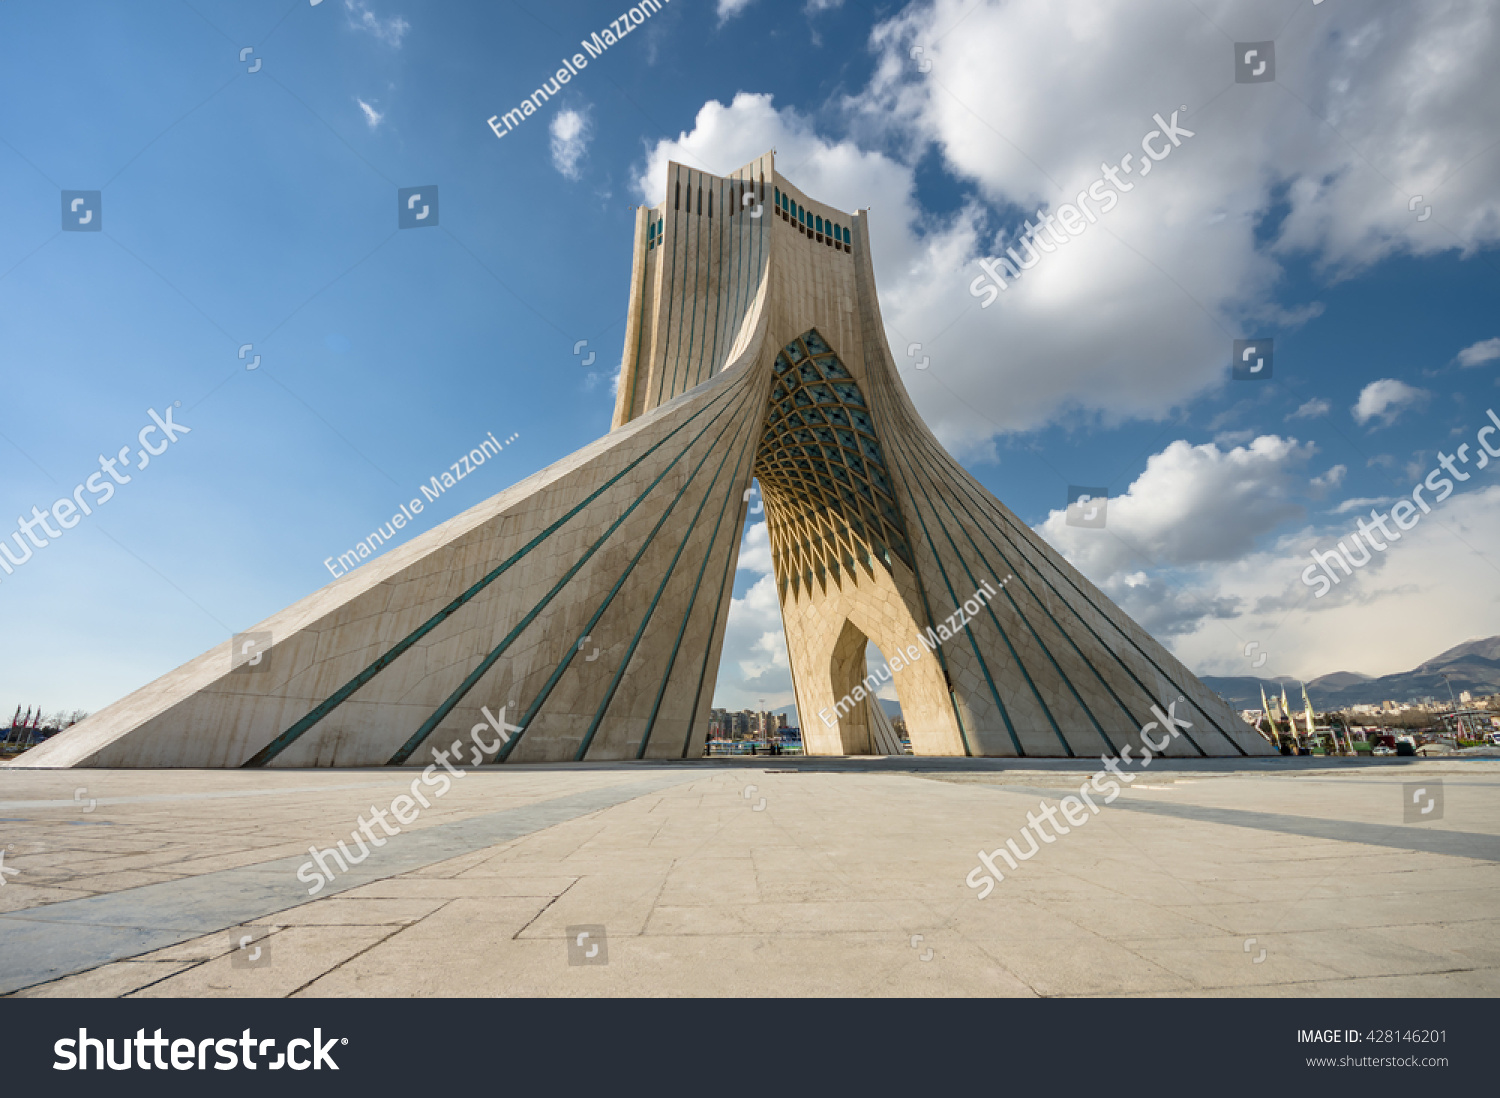 Teheran Iran February 2016 Azadi Tower Stock Photo 428146201 ...